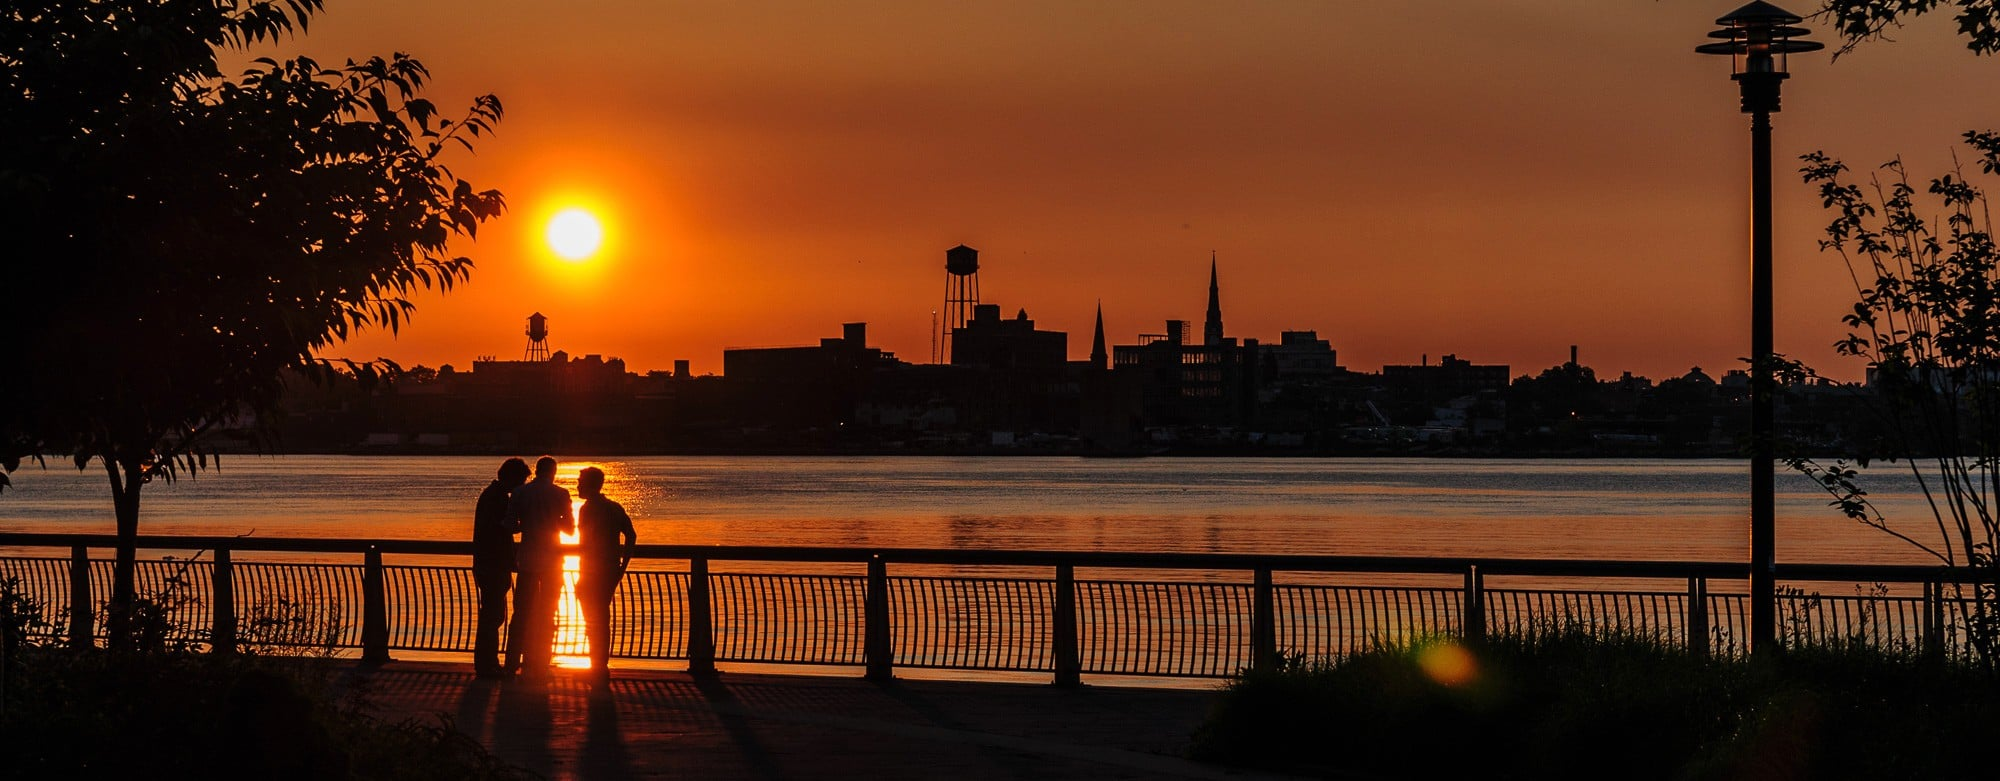 East-River-Park-Sunrise